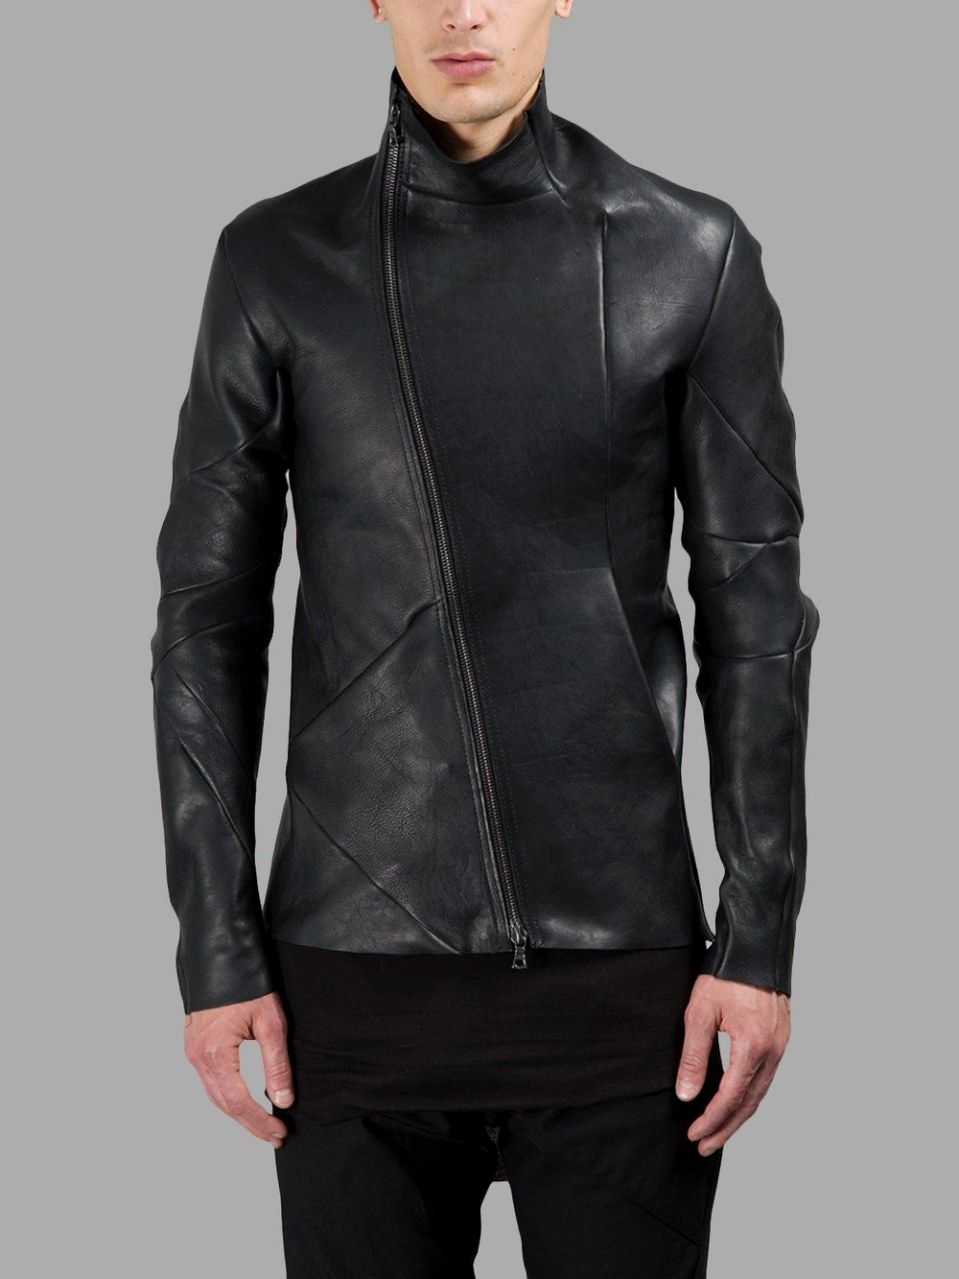 Leather stylish jackets online recommend dress for winter in 2019